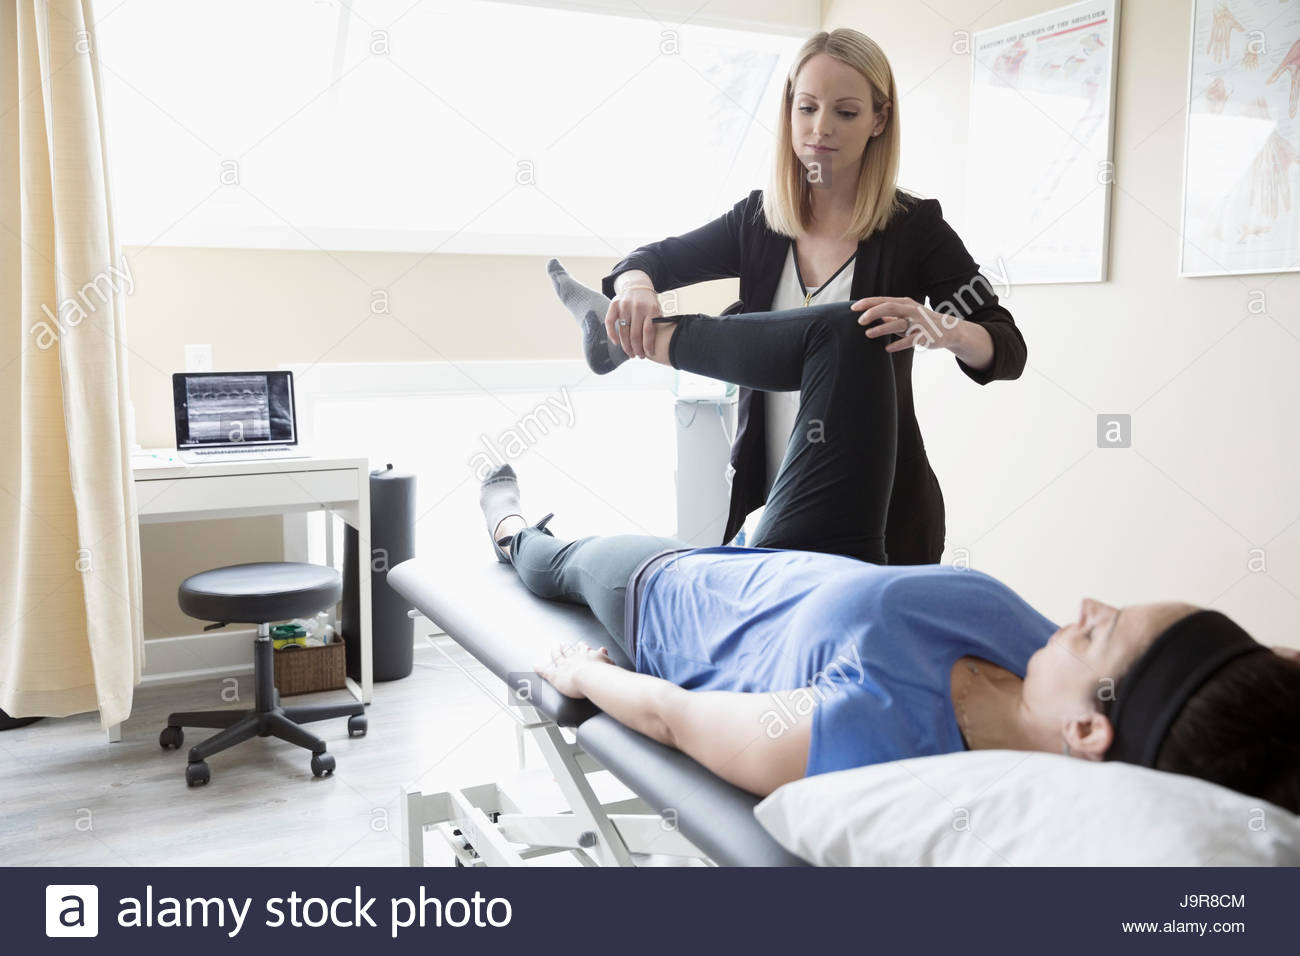 Female physiotherapist stretching woman on clinic examination room - Stock Image